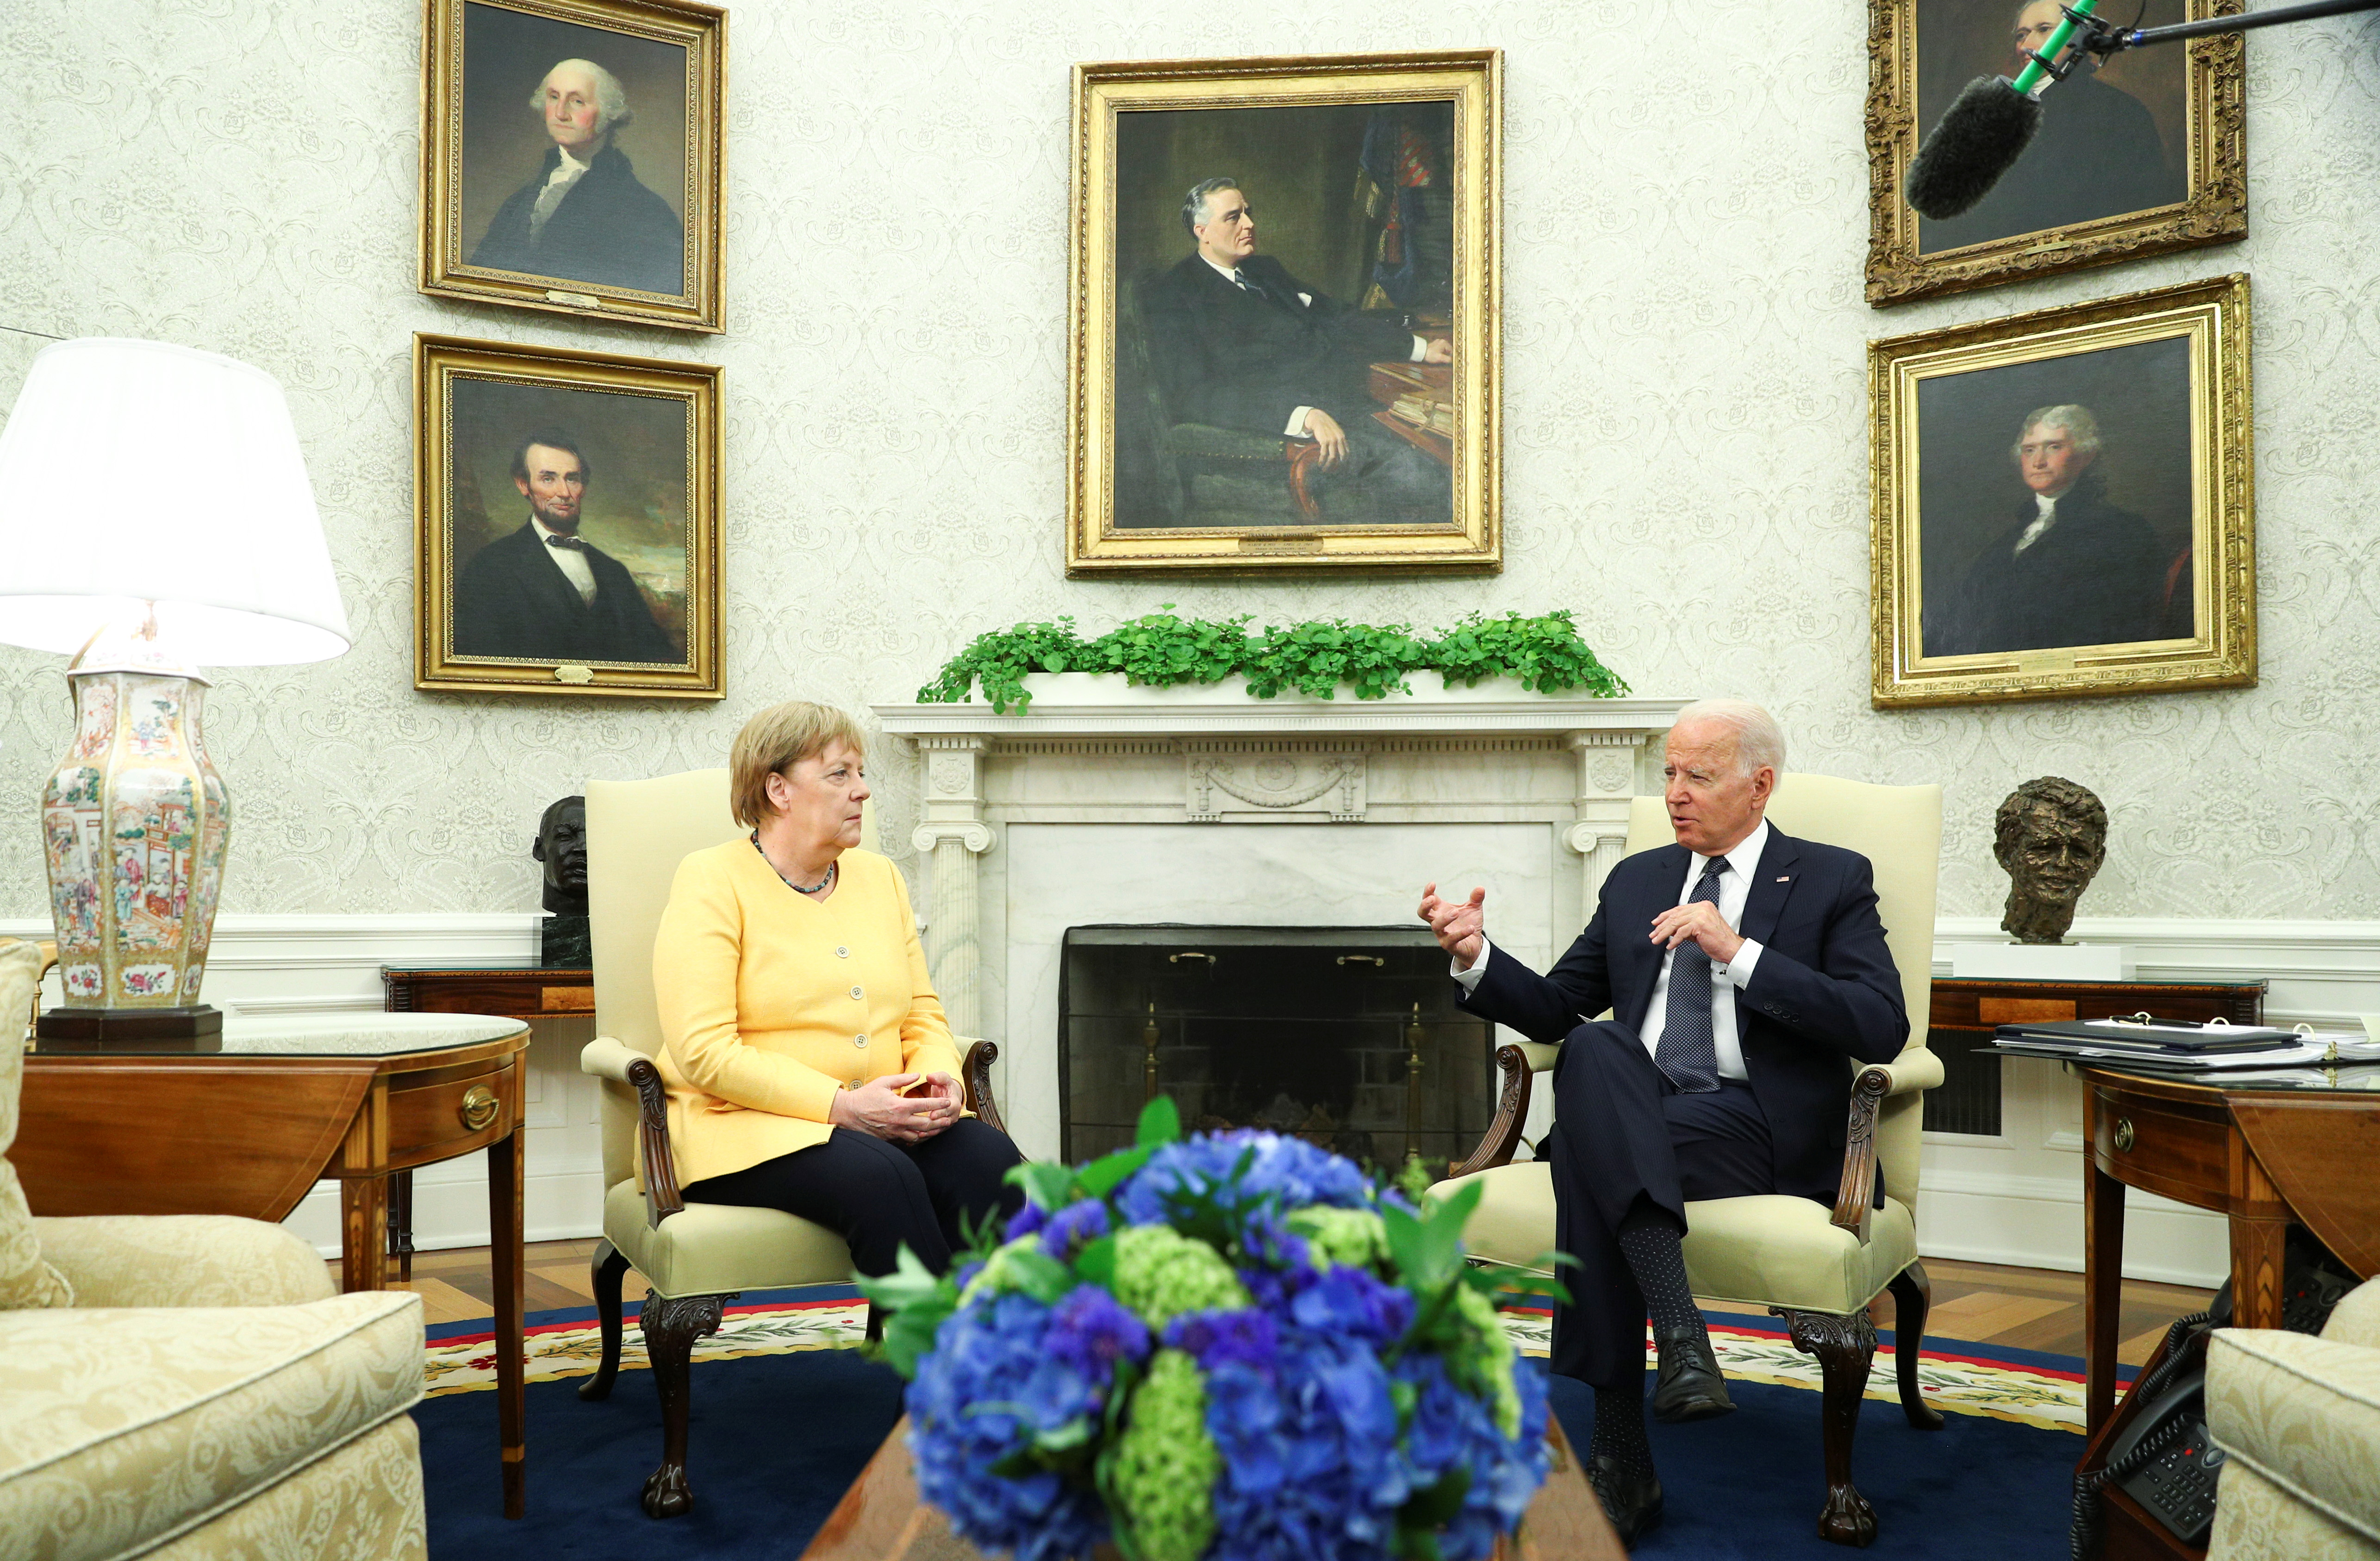 U.S. President Joe Biden holds a bilateral meeting with German Chancellor Angela Merkel in the Oval Office at the White House in Washington, U.S., July 15, 2021. REUTERS/Tom Brenner m Brenner